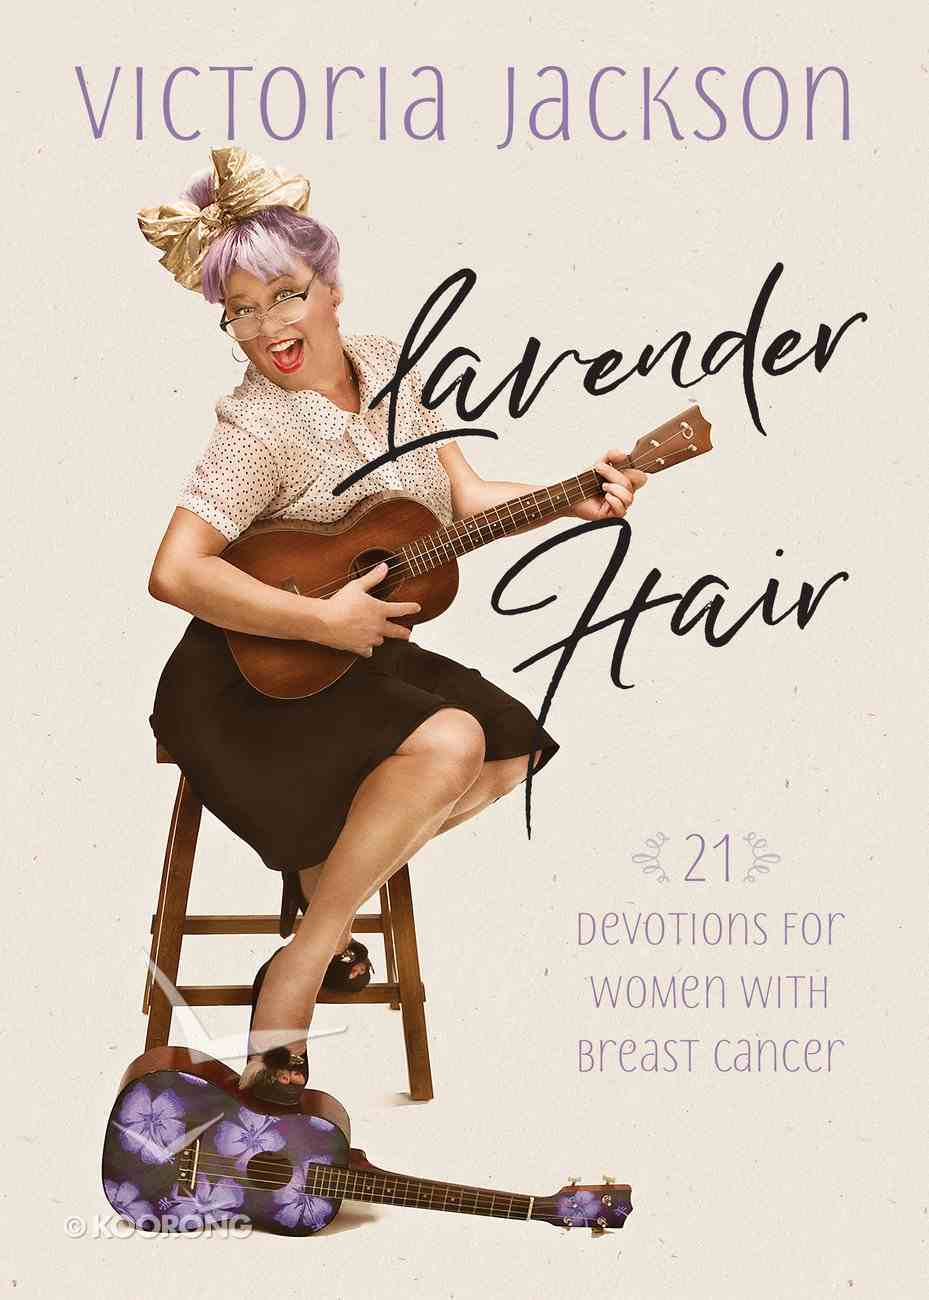 Lavender Hair: 21 Uplifting Devotions For Women With Breast Cancer Paperback